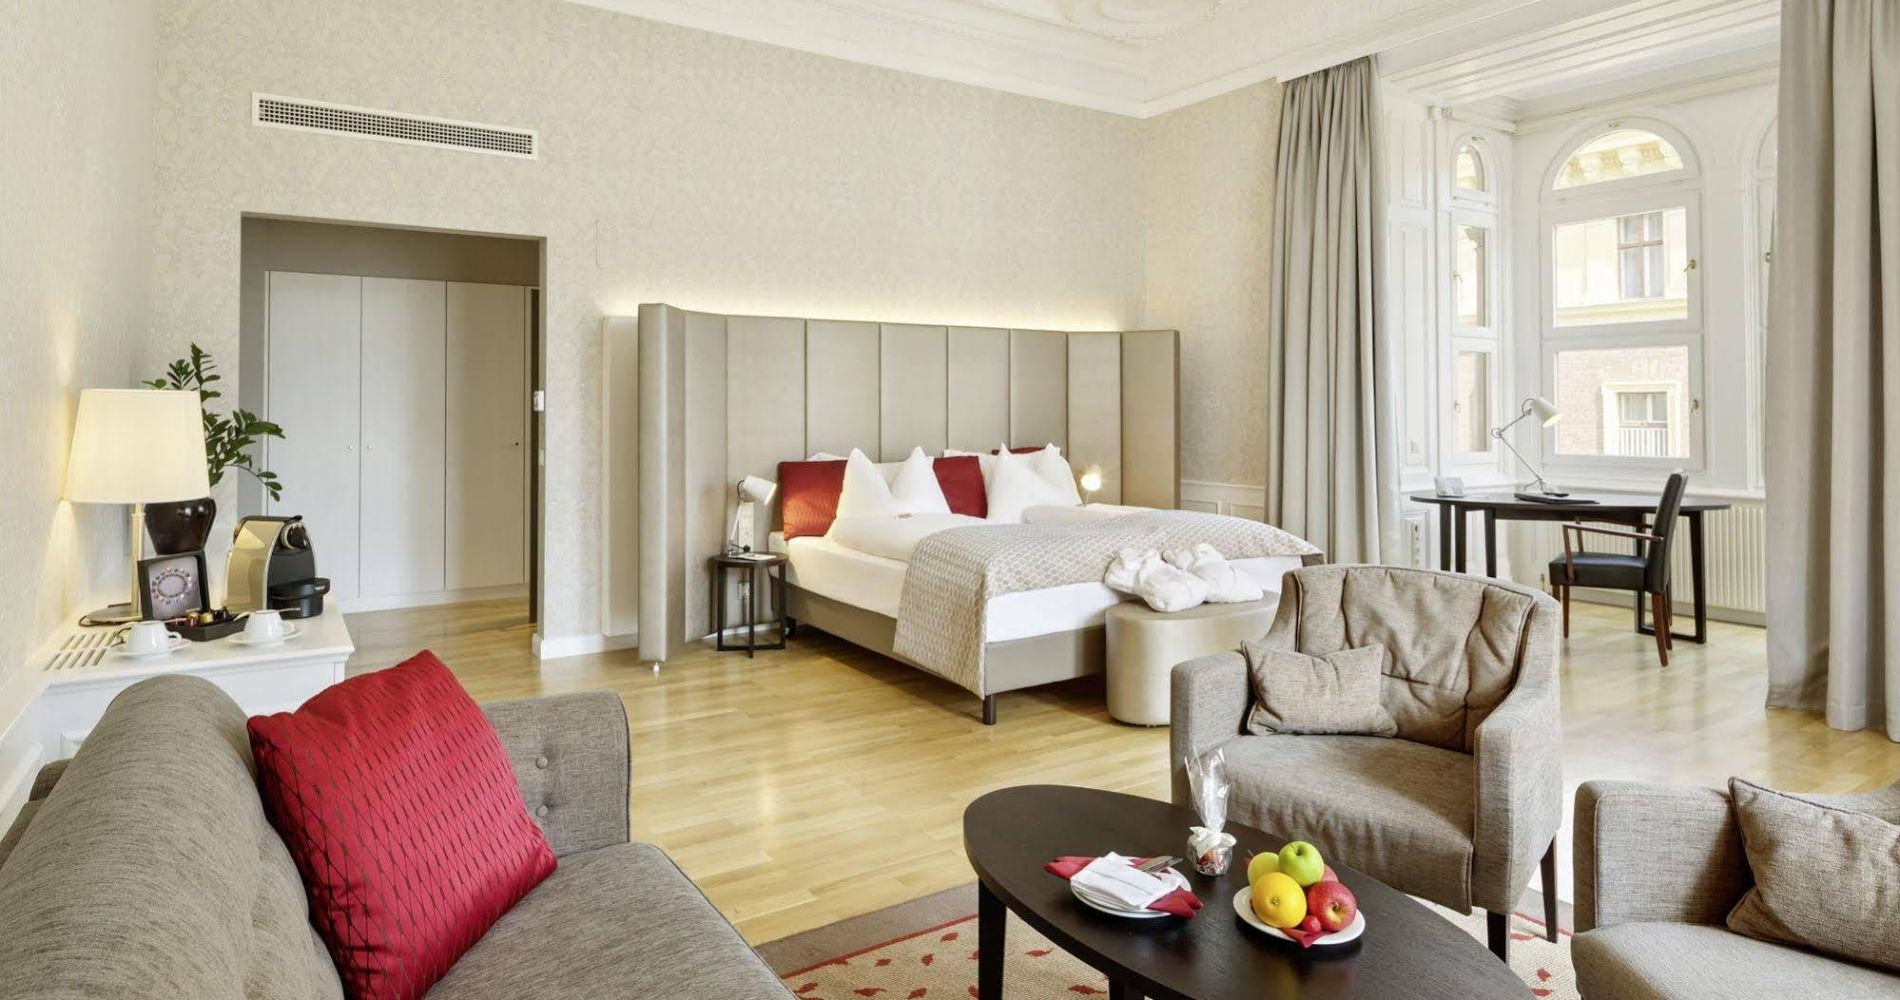 Austria Trend Hotel Rathauspark Hotels And